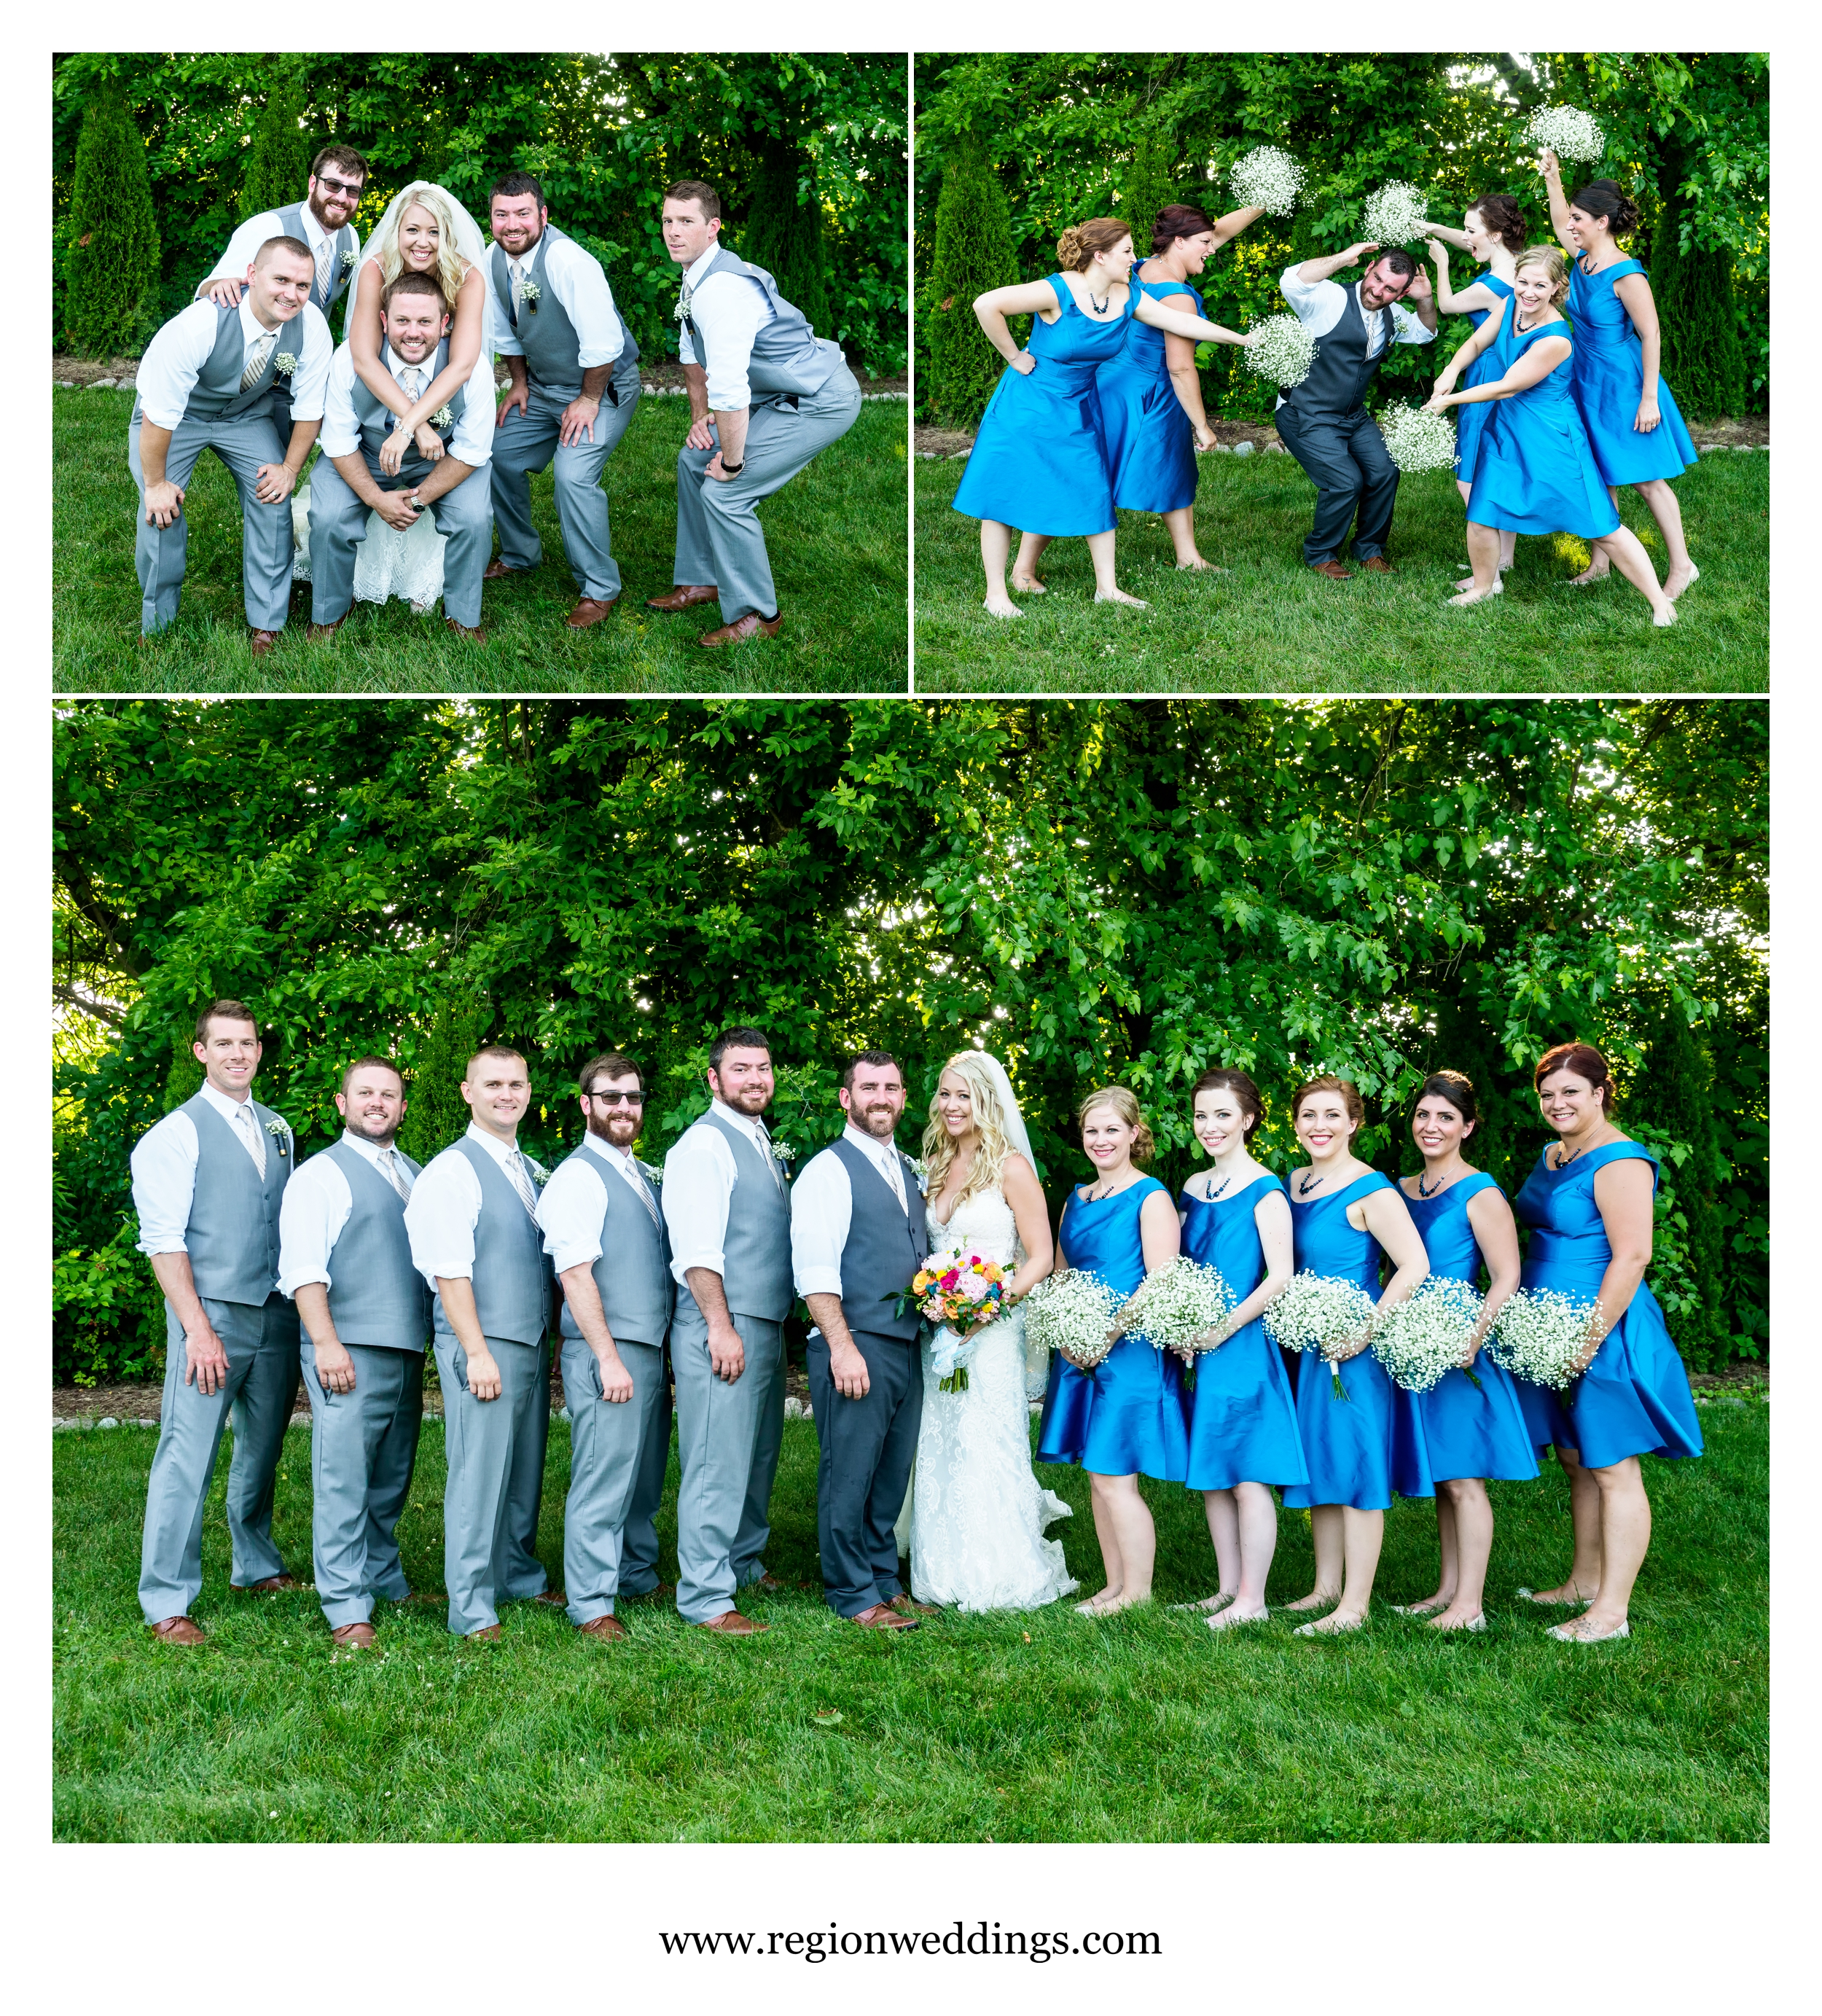 Wedding party group photos at County Line Orchard.